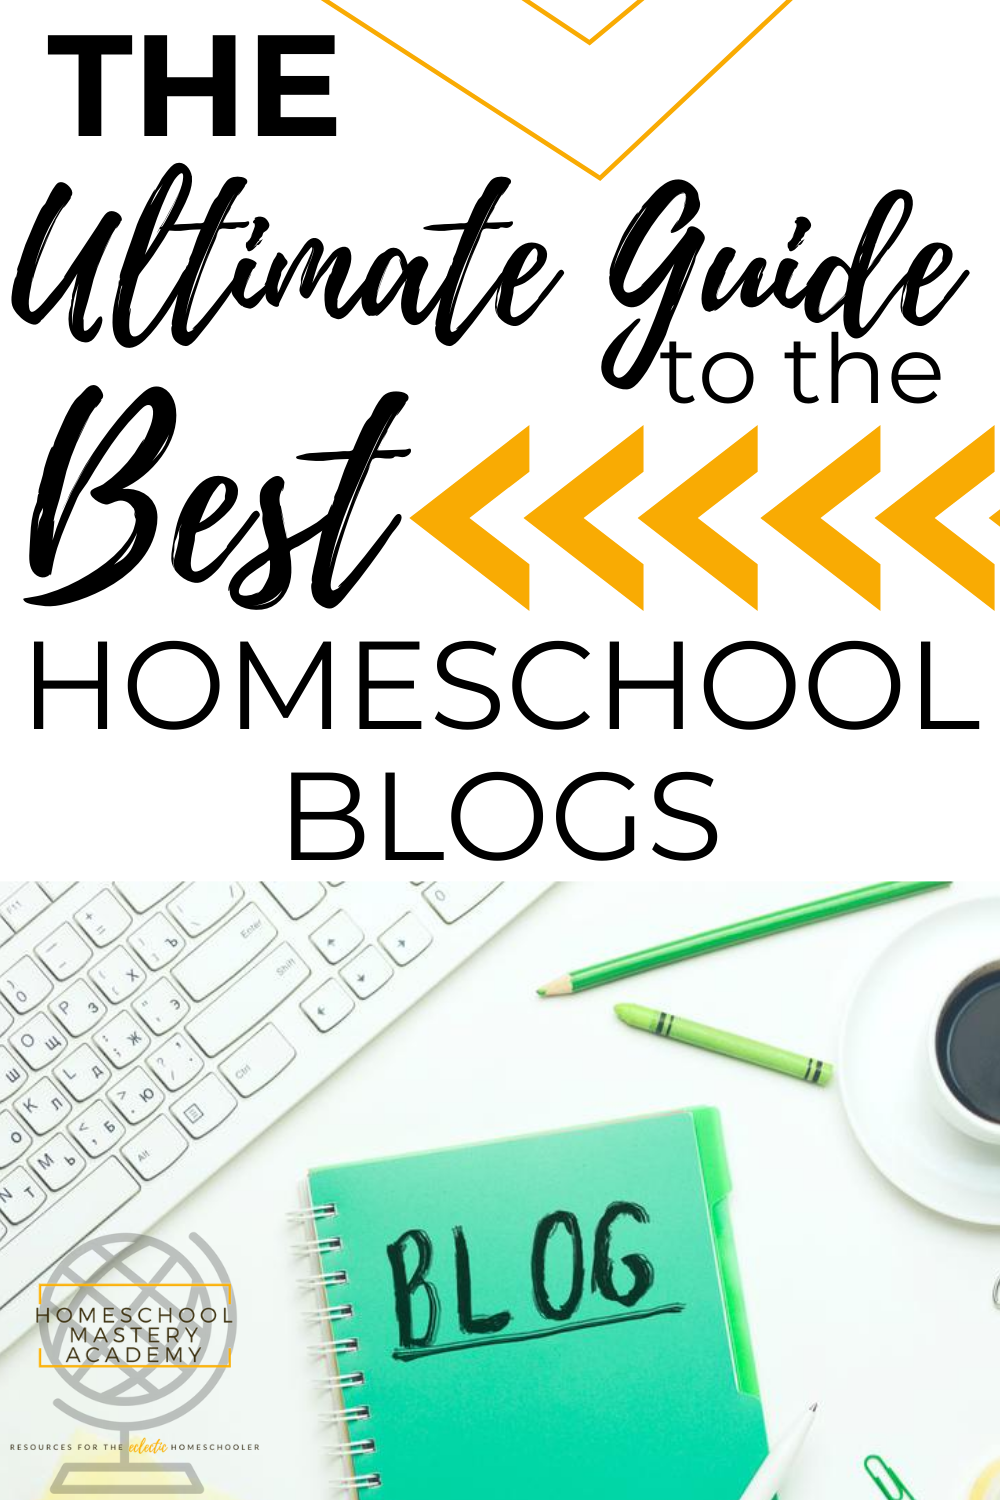 Homeschool Blogs